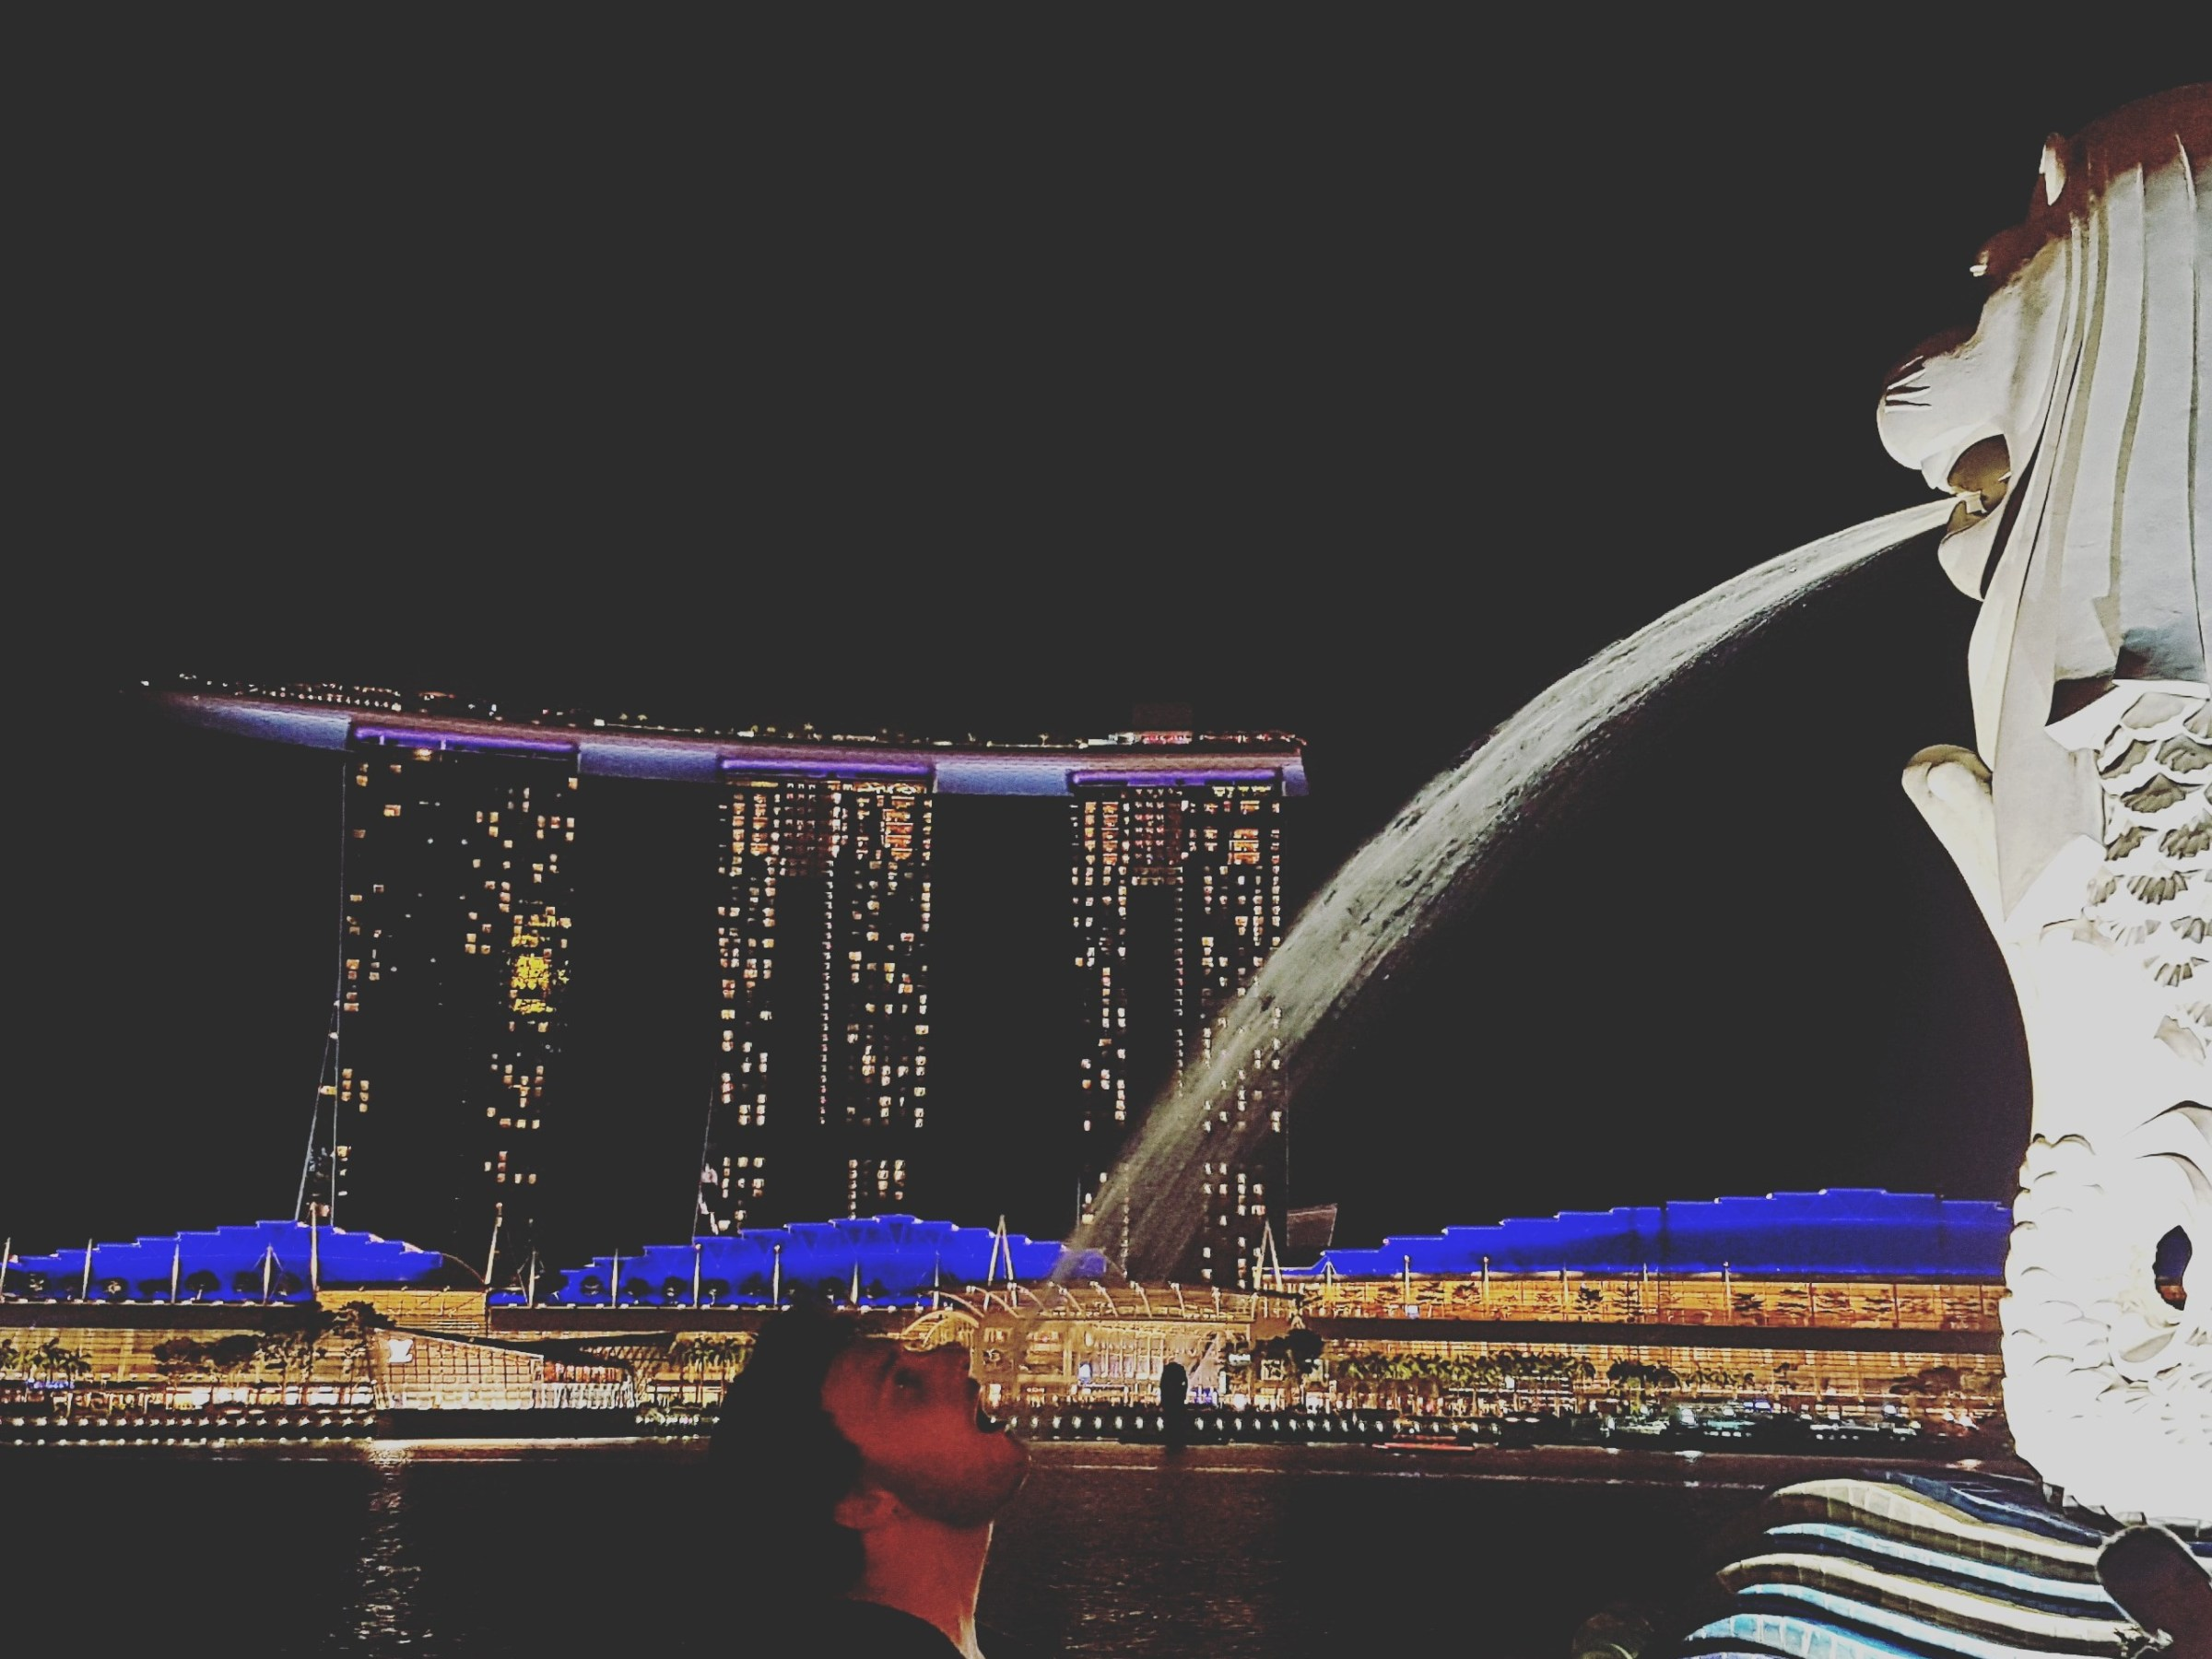 TW and the Merlion